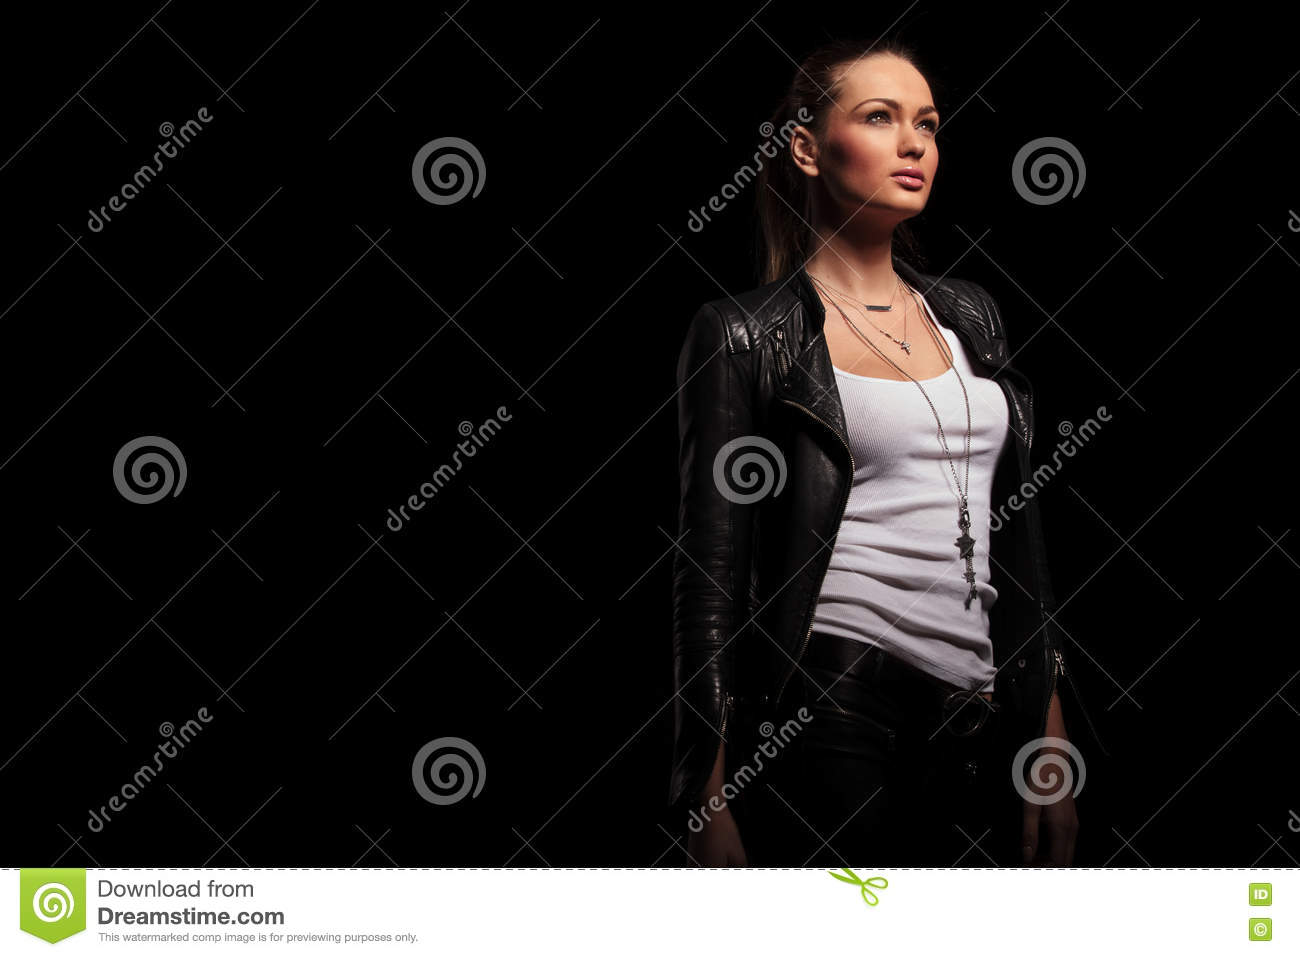 Side view of a woman in leather clothes looking up